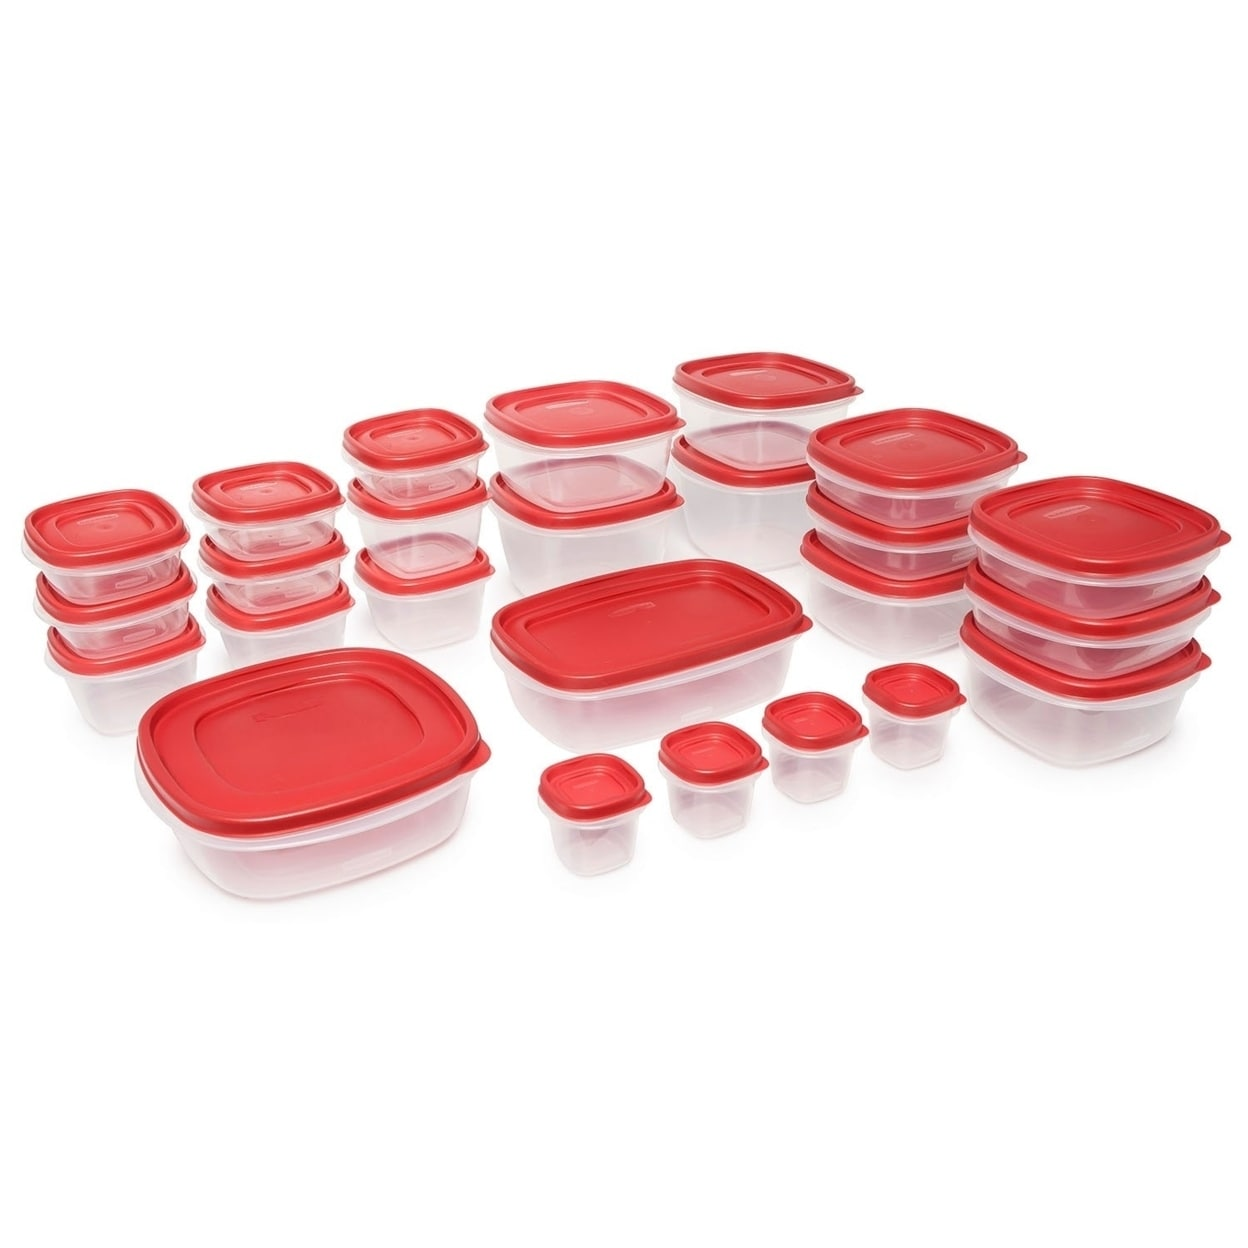 4 Rubbermaid Easy Find Lids Food Storage and Organization Containers Set of 20